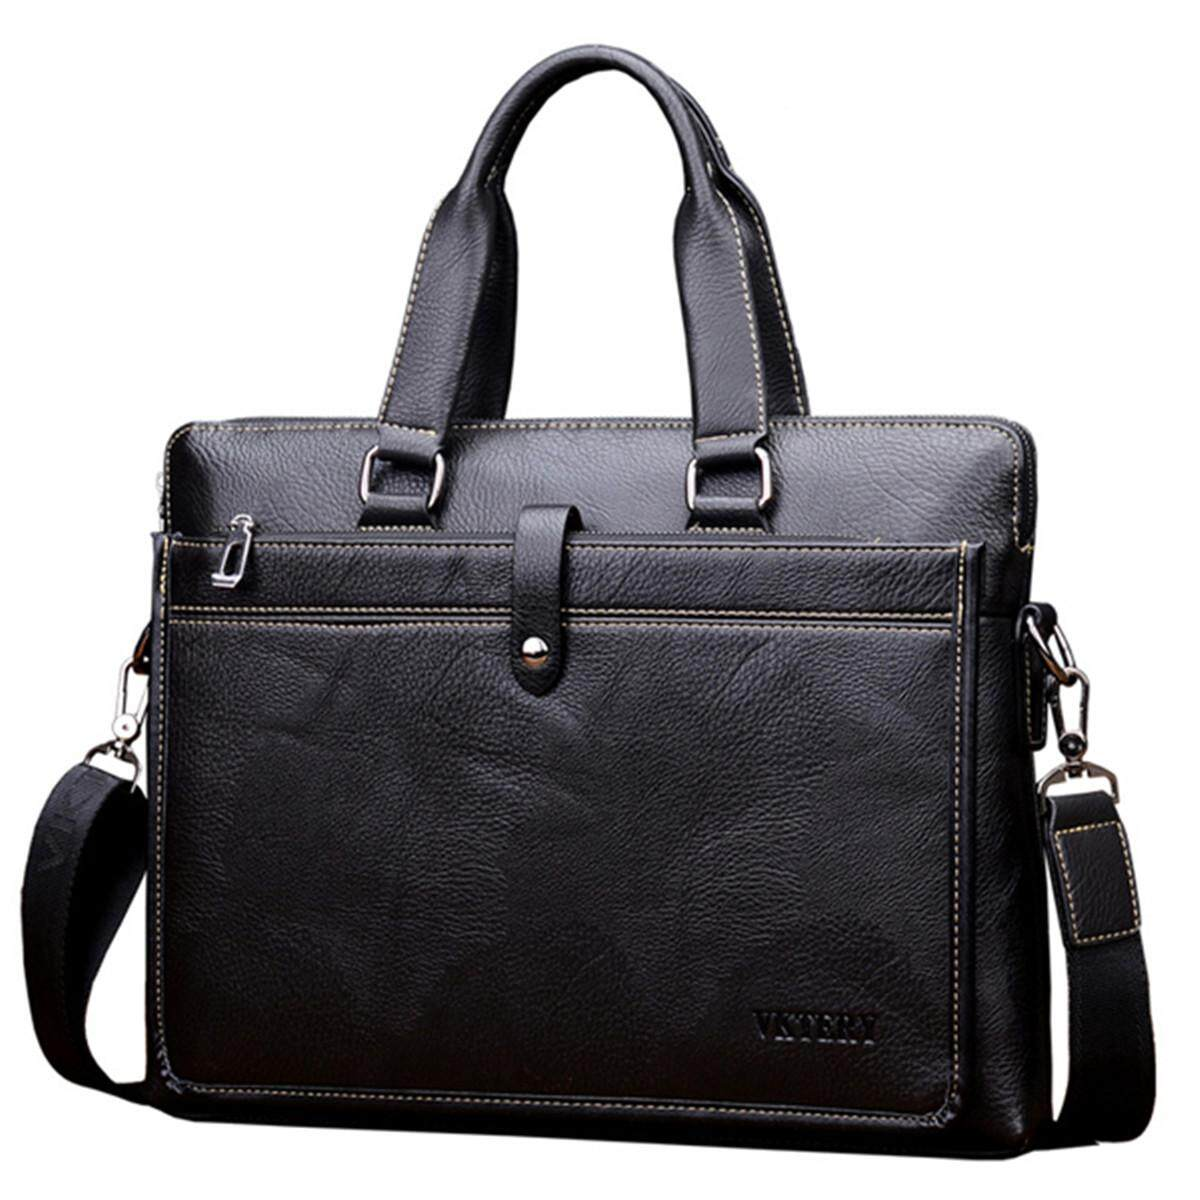 Toko New Vintage Leather Business Laptop Bag Handbag Corssbody Bag For Men Male Intl Lengkap Di Tiongkok